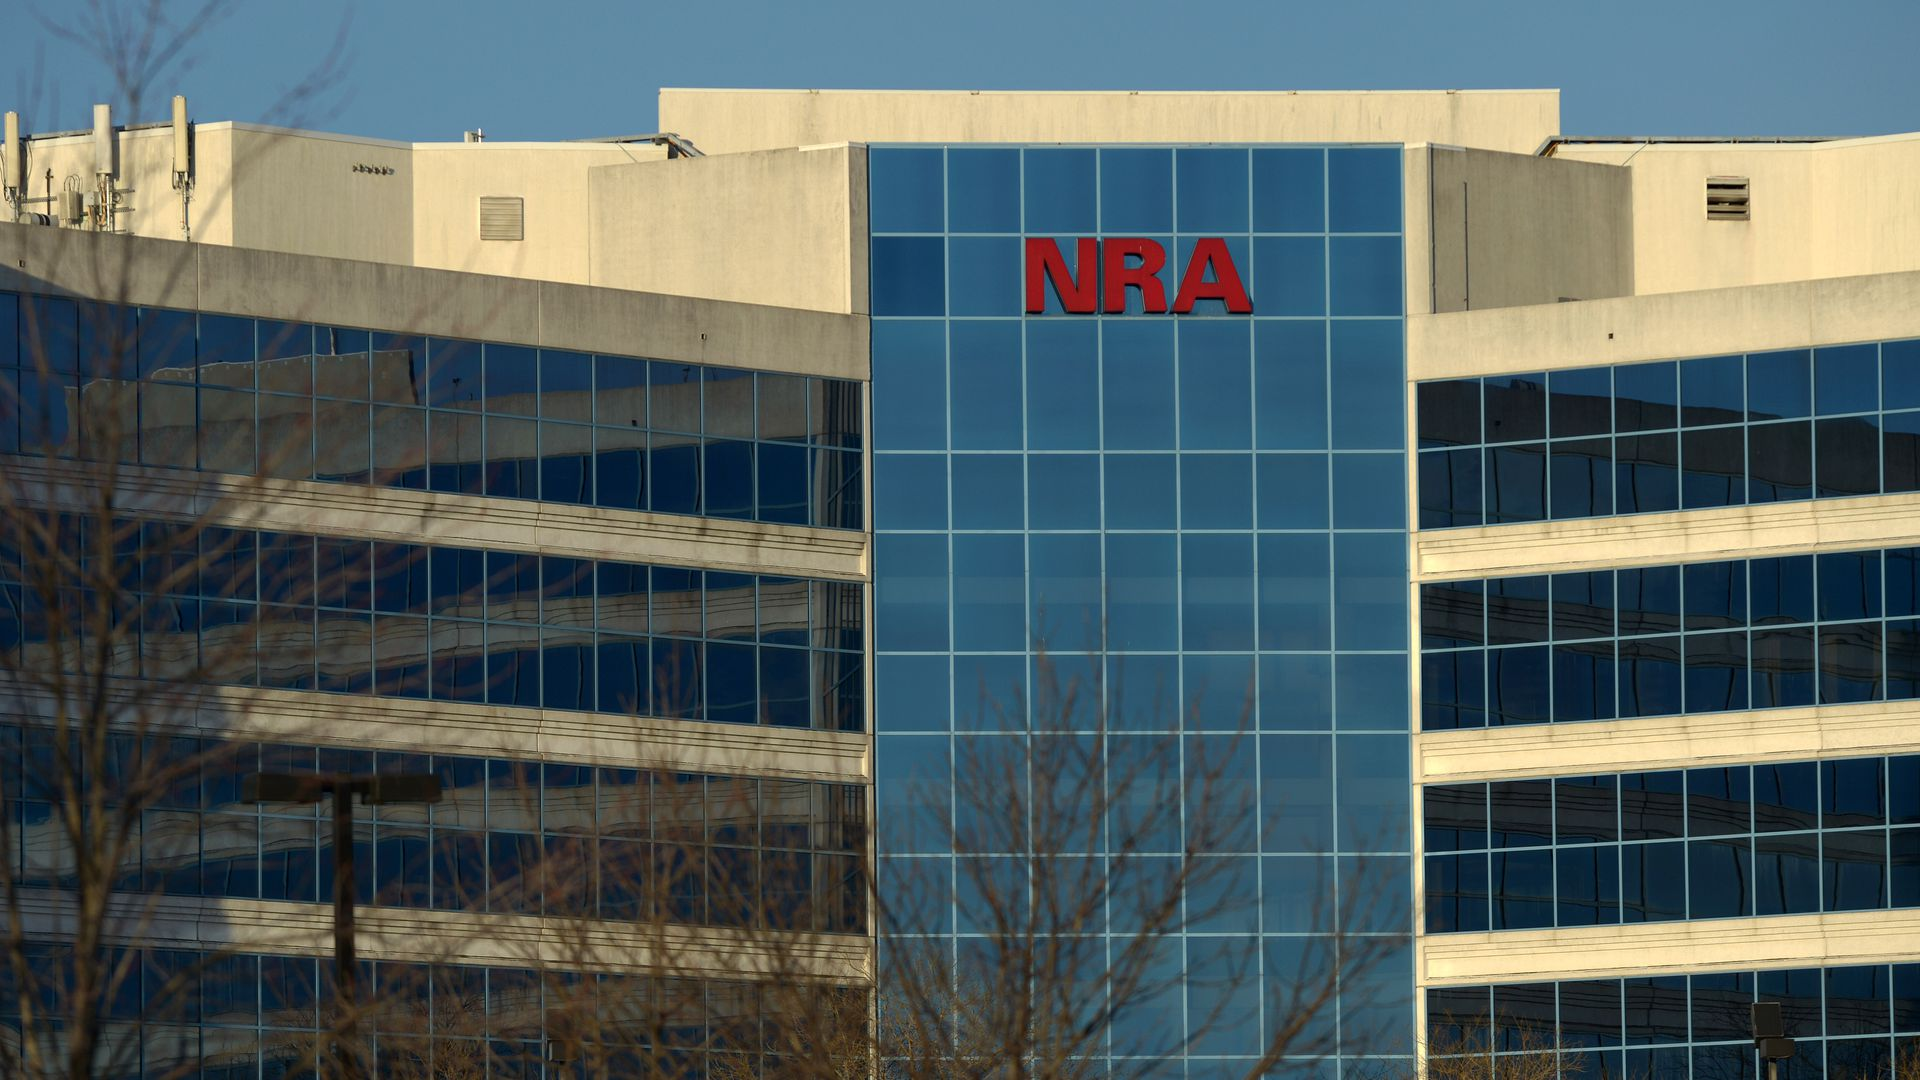 The headquarters of the NRA, with the letters NRA written on top of the building.